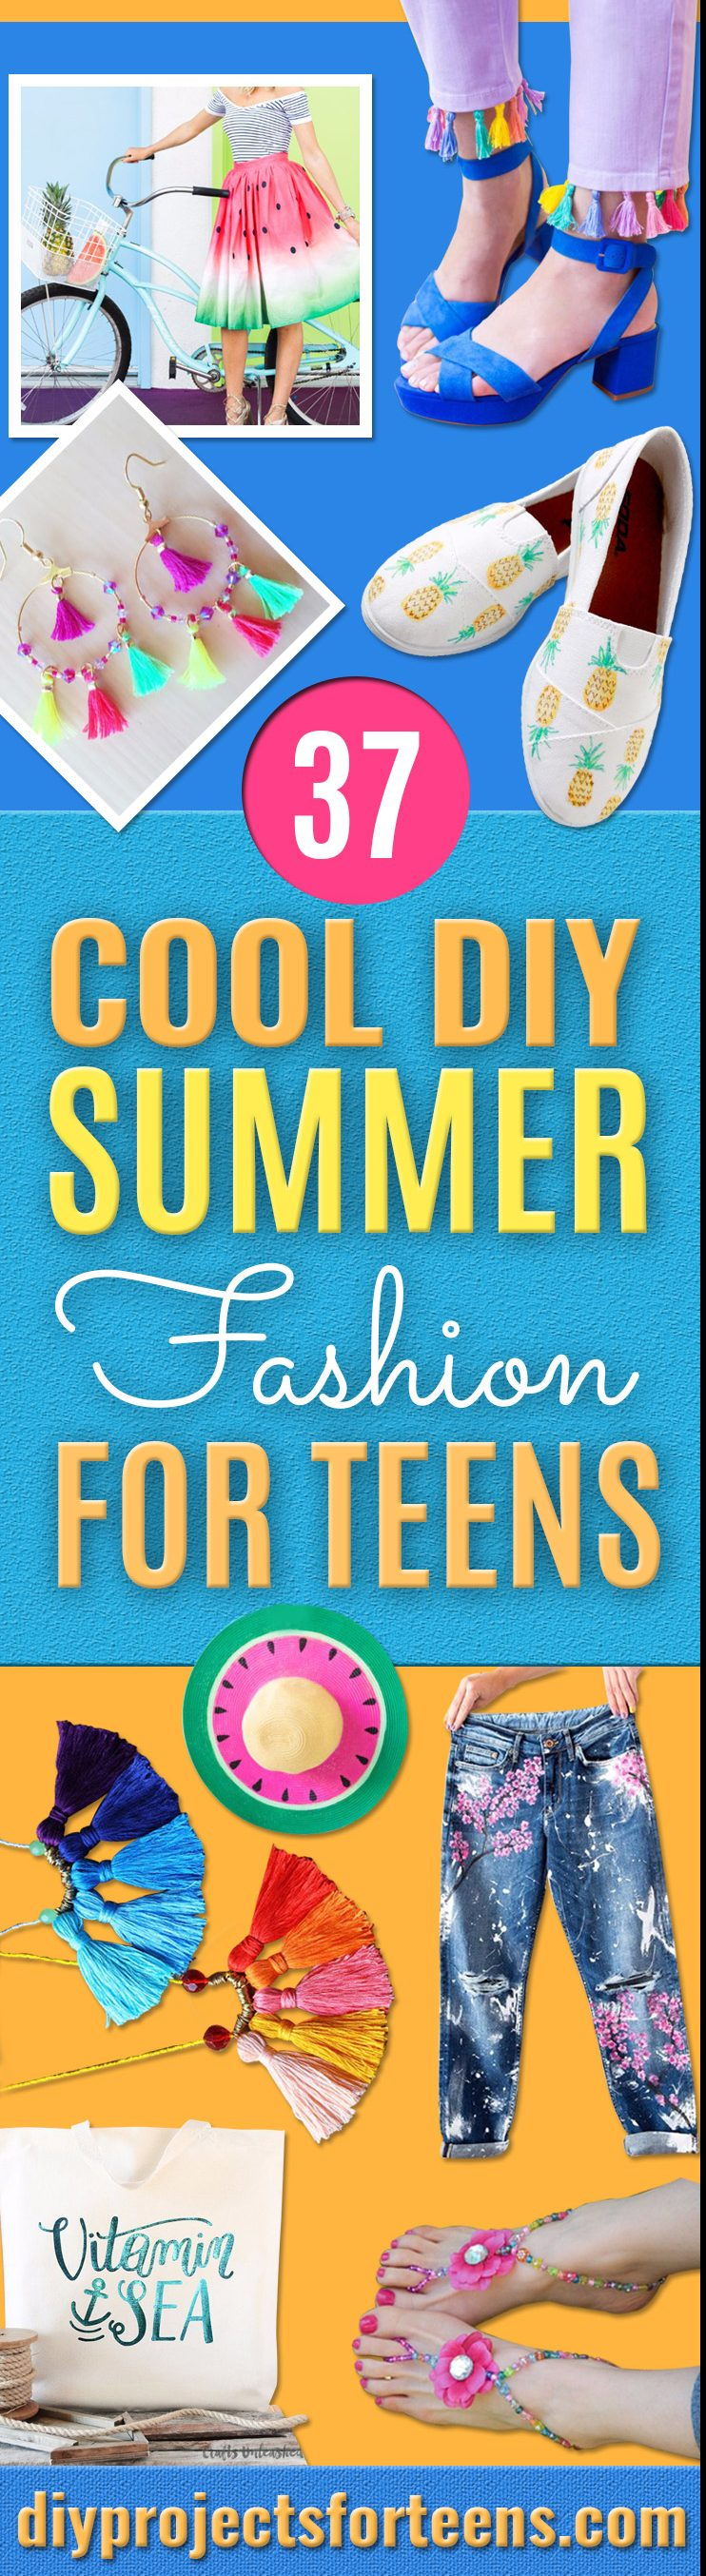 Cool Summer Fashions for Teens - Easy Sewing Projects and No Sew Crafts for Fun Fashion for Teenagers - DIY Clothes, Shoes and Accessories for Summertime Looks - Cheap and Creative Ways to Dress on A Budget